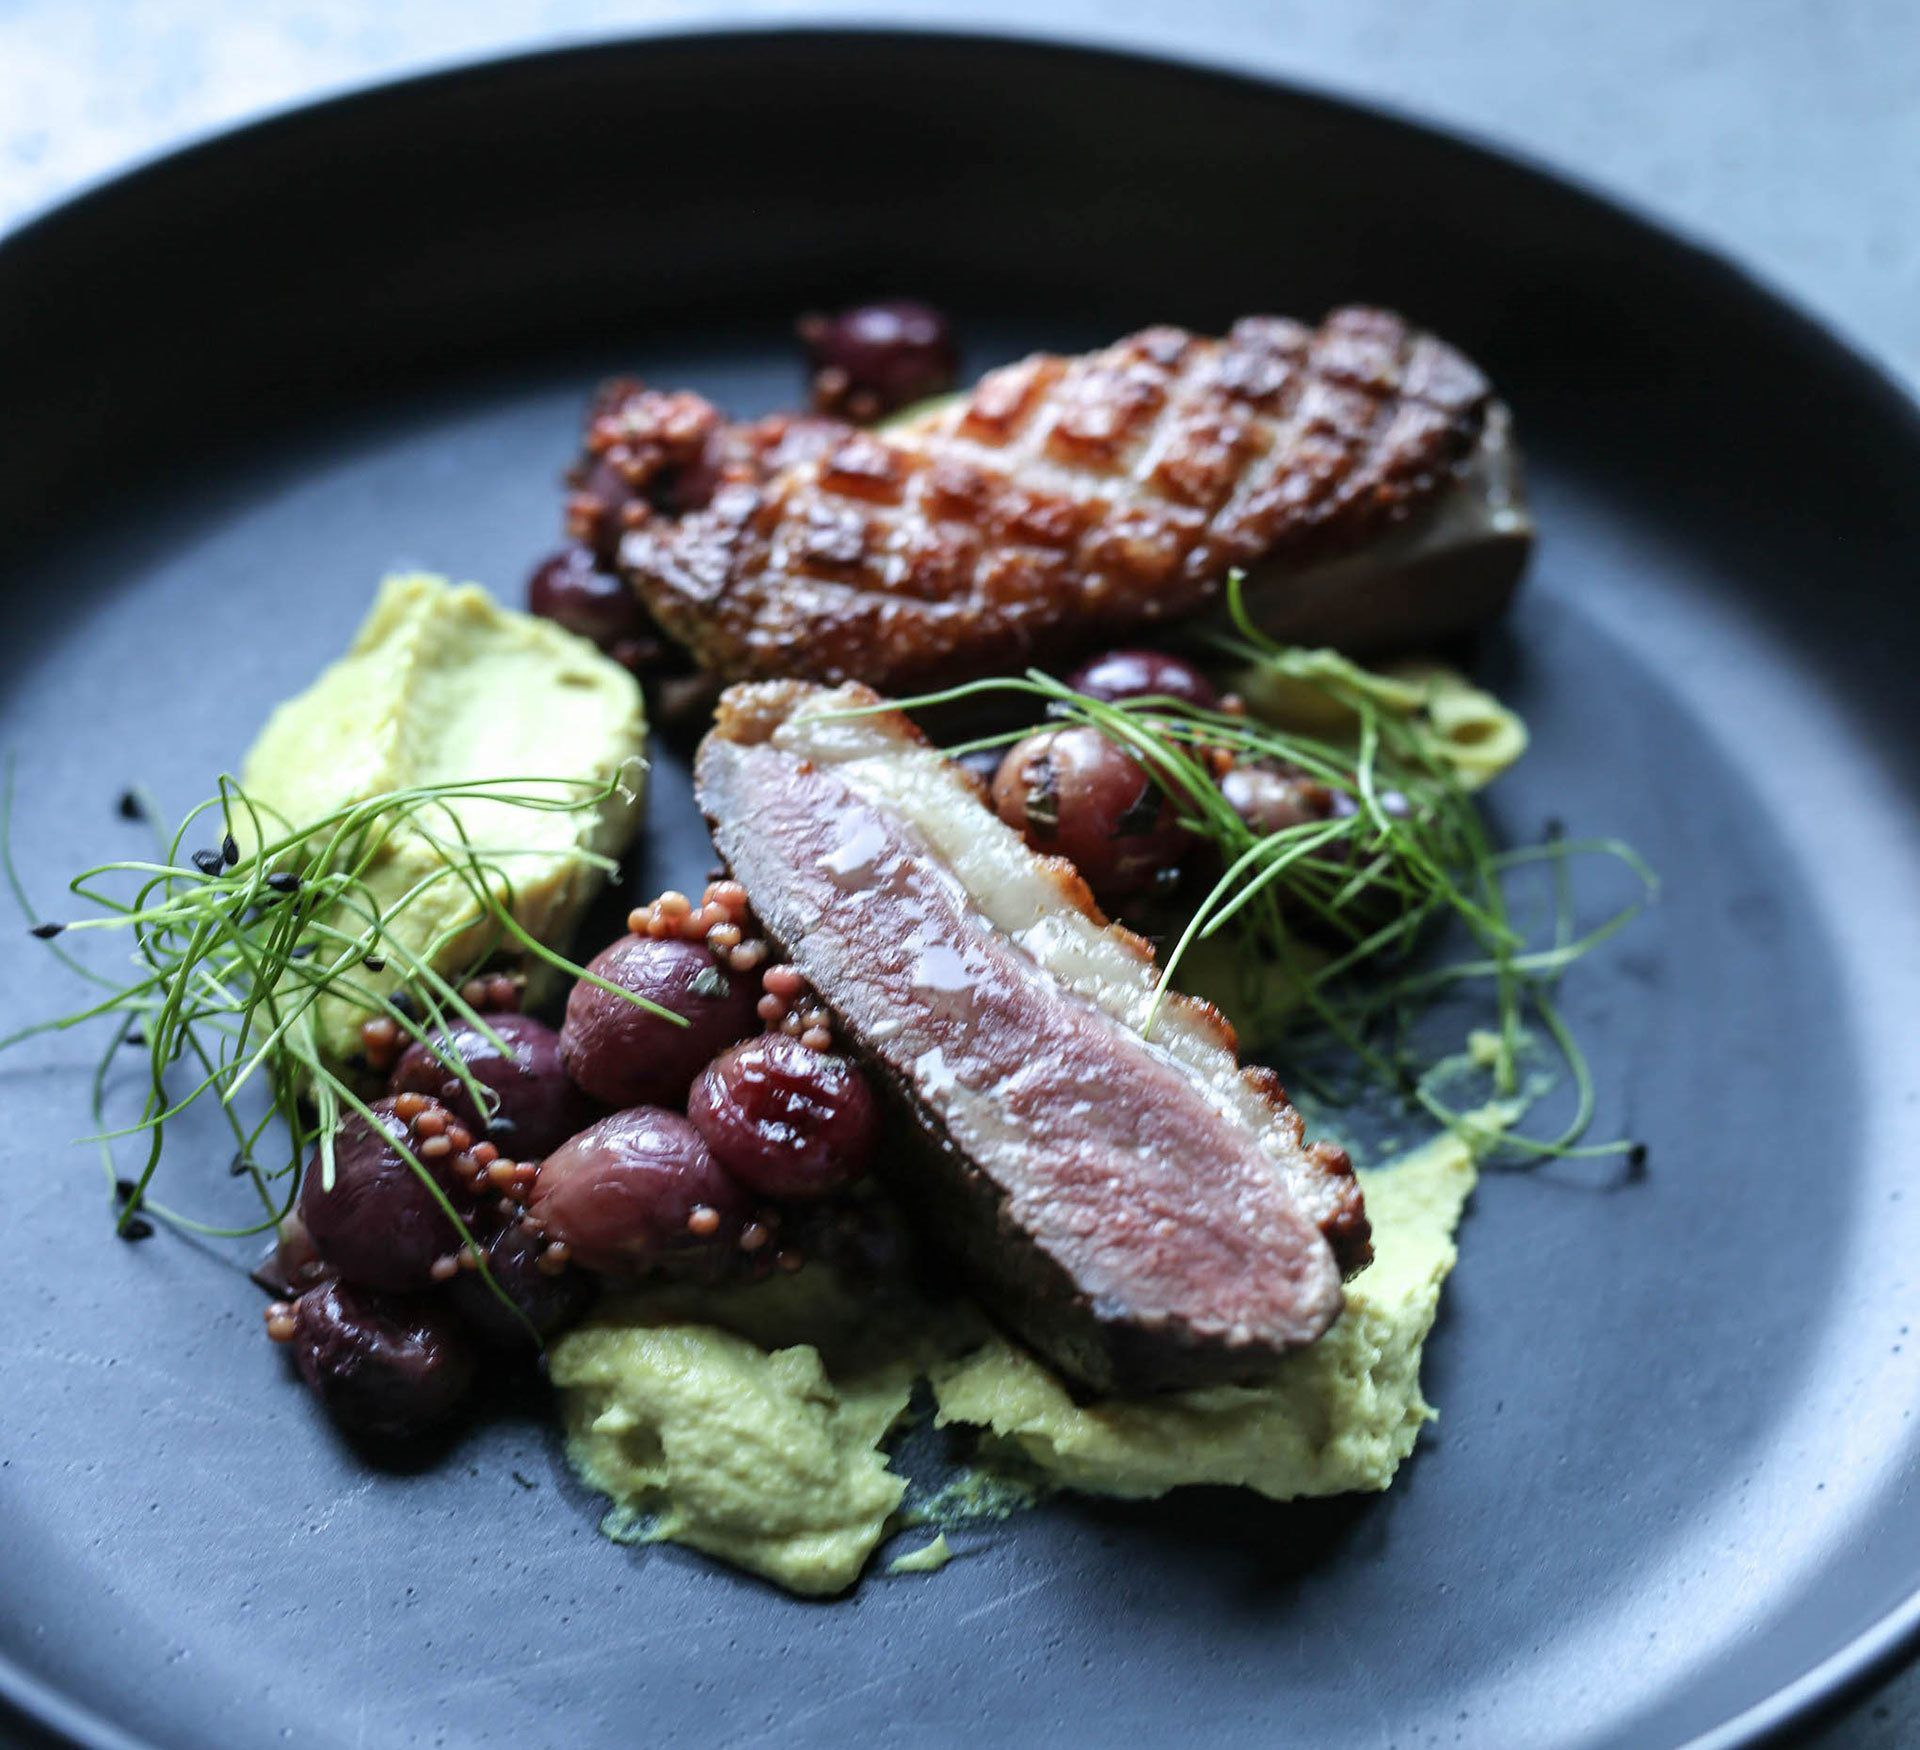 Town Kitchen And Bar: Contemporary American Restaurant In Morristown, NJ